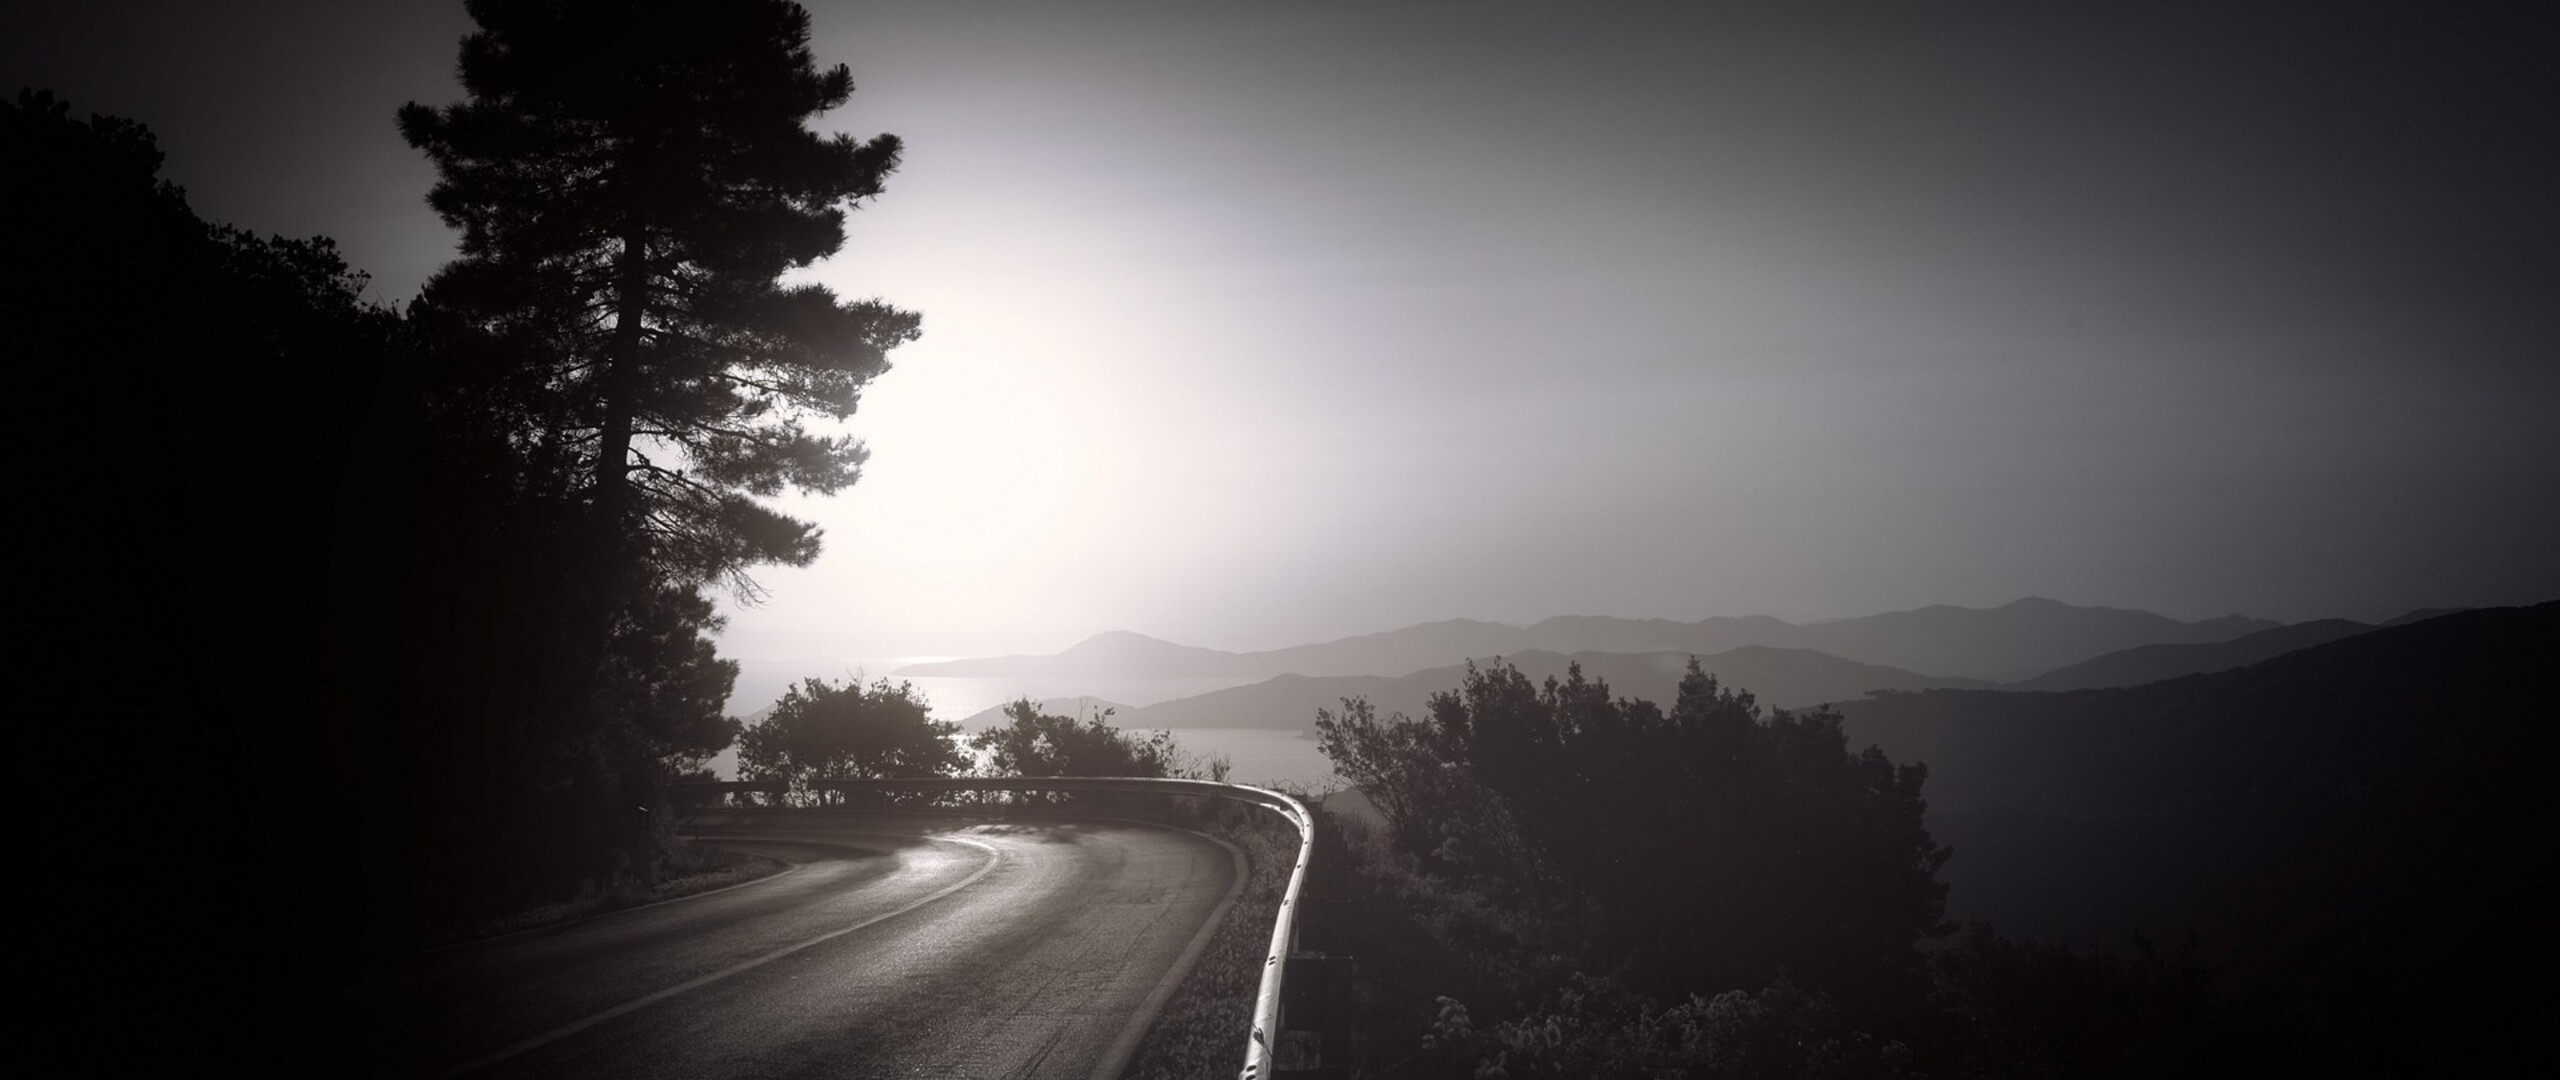 2560x1080 Dark Road 2560x1080 Resolution Hd 4k Wallpapers Images Backgrounds Photos And Pictures